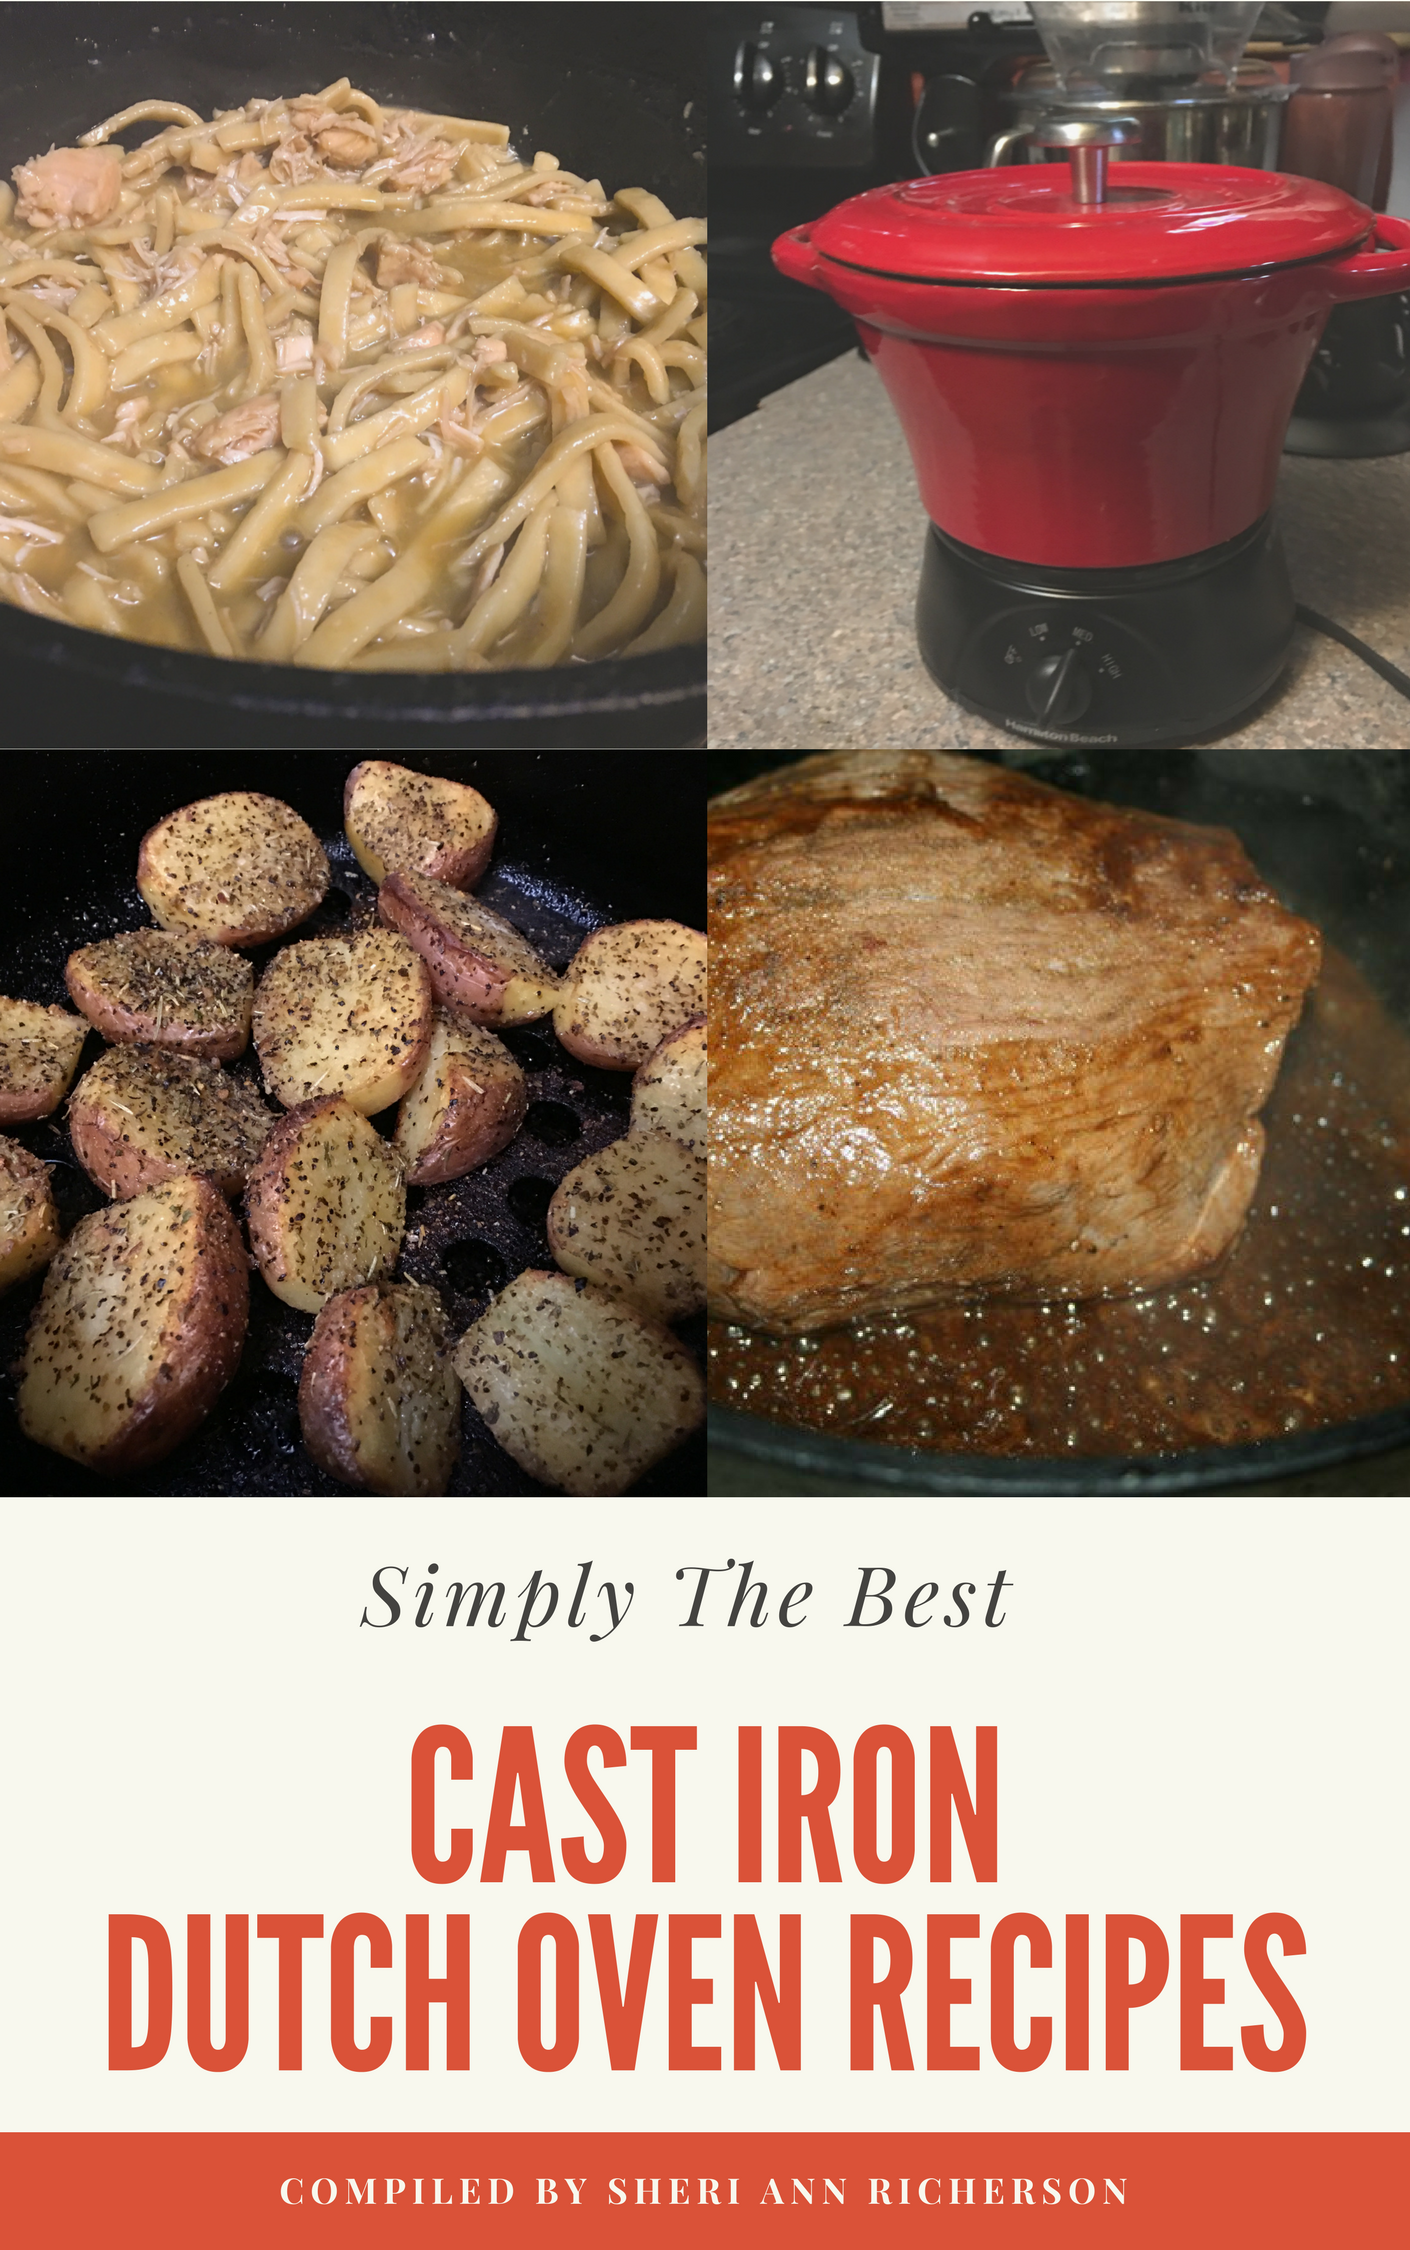 Click here to get your free copy of Simply The Best Cast Iron Dutch Oven Recipes!